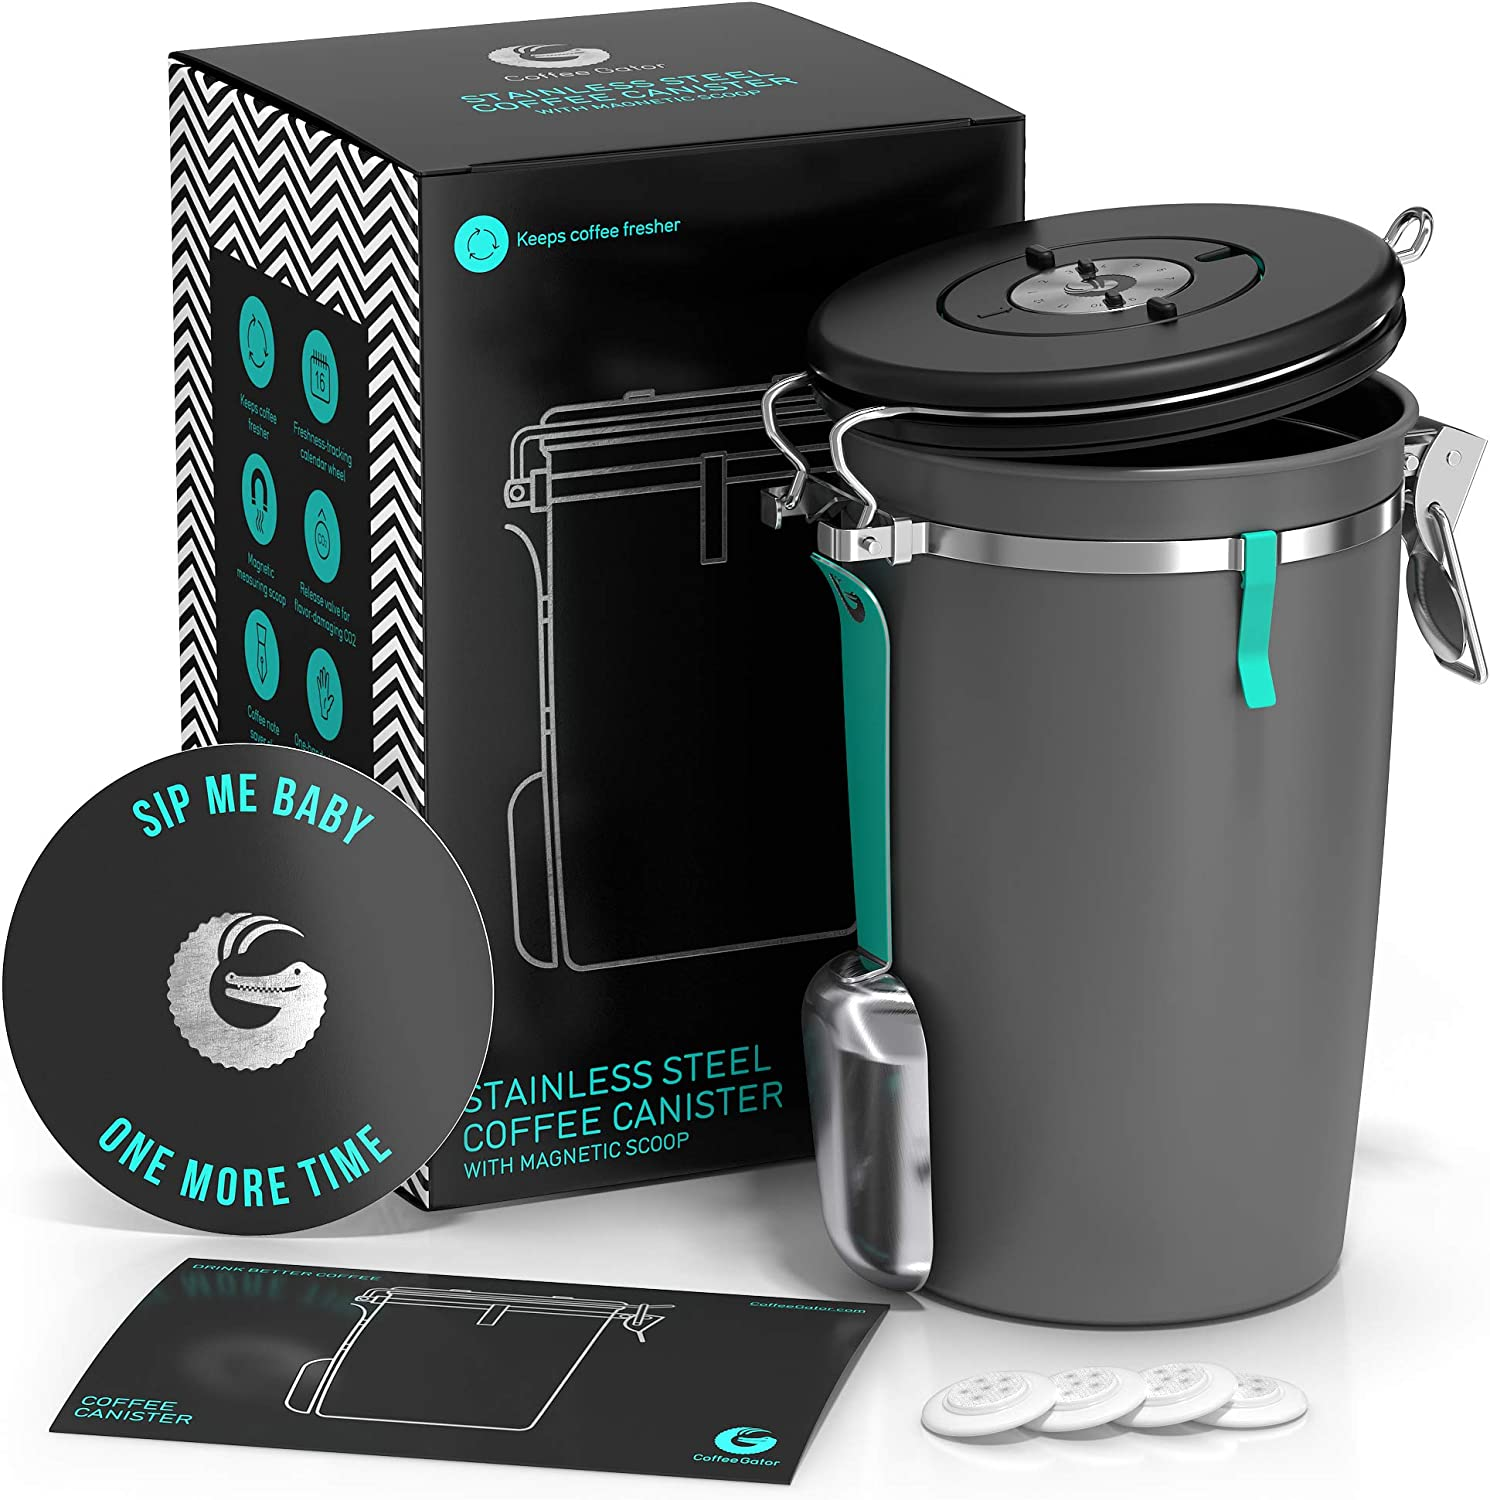 Beans and Coffee Grounds Container - New 2020 Model Coffee Gator Stainless Steel Canister - CO2 Release Valve, Magnetic Scoop Attachment and Bag-Saver Clip - Holds 22oz Beans, 64floz Capacity